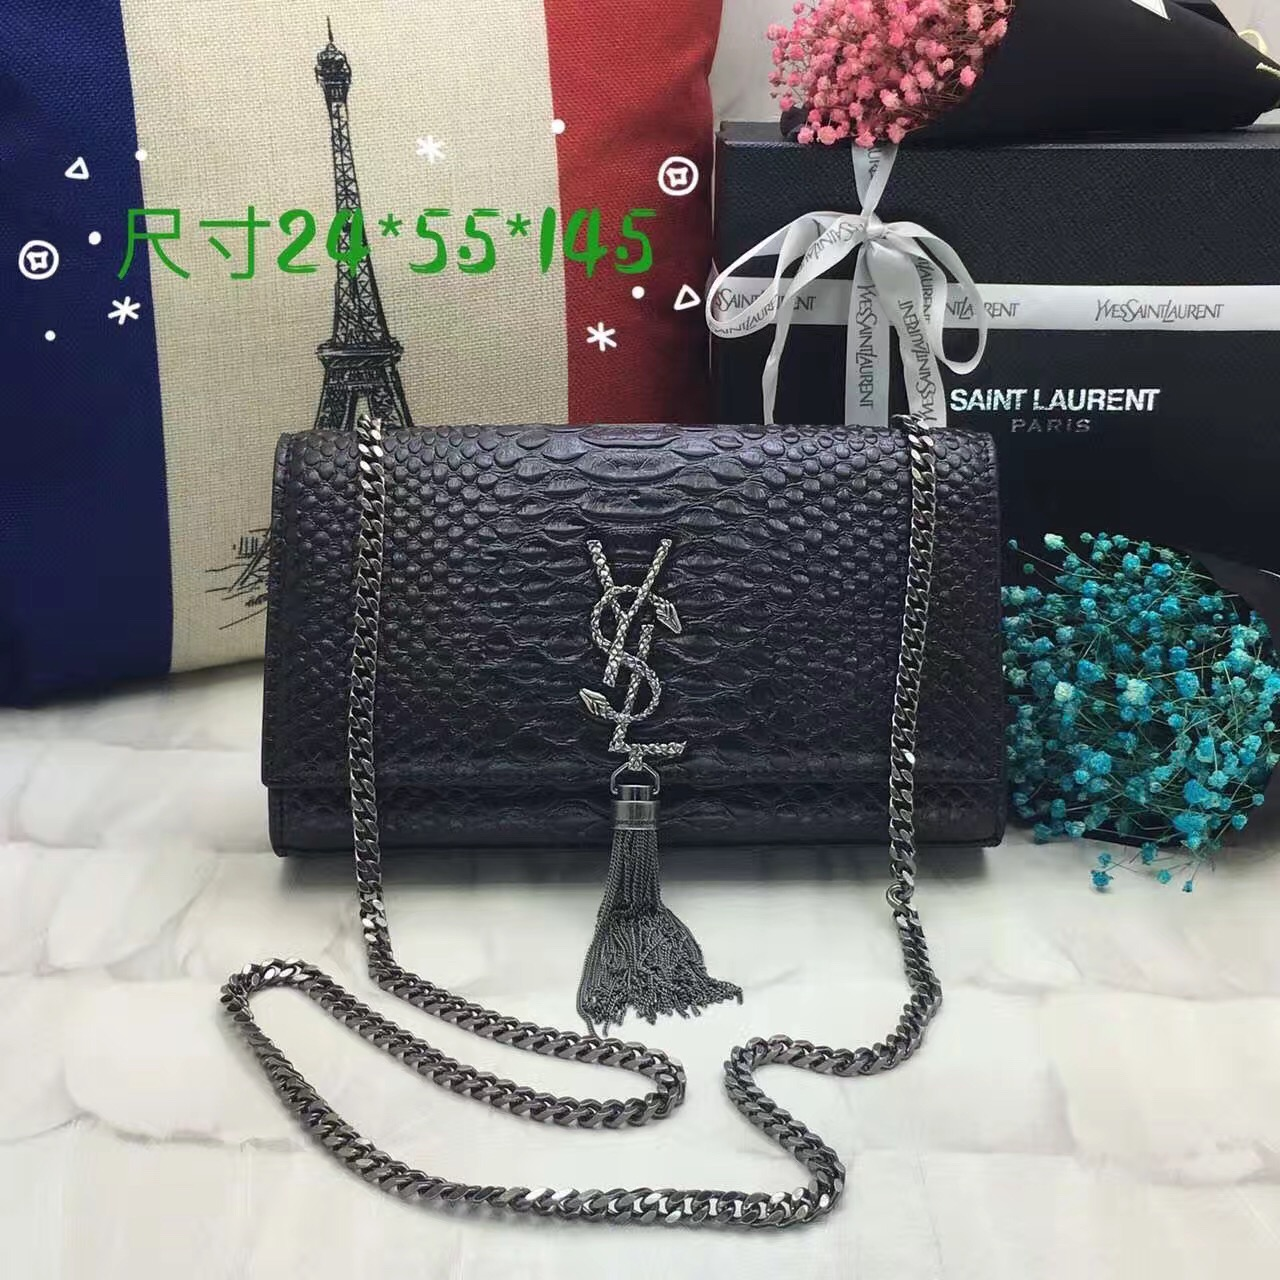 YSL Monogram Tassel Chain Bag 24cm Snake Black